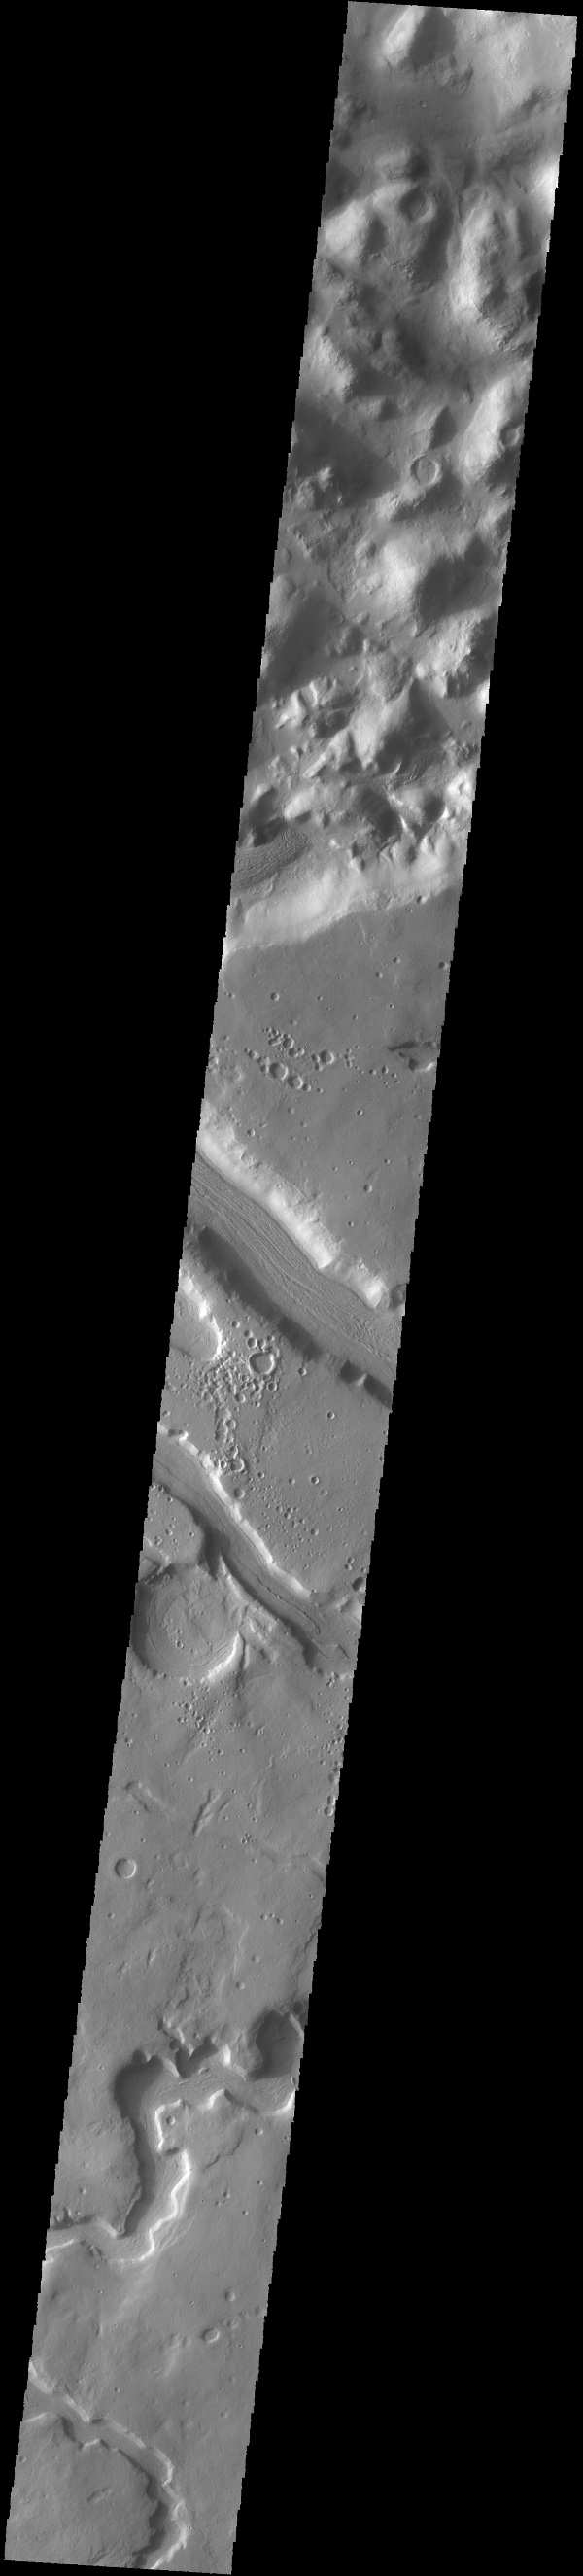 The sinuous channel at the bottom of this image captured by NASA's 2001 Mars Odyssey spacecraft is called Anio Valles.